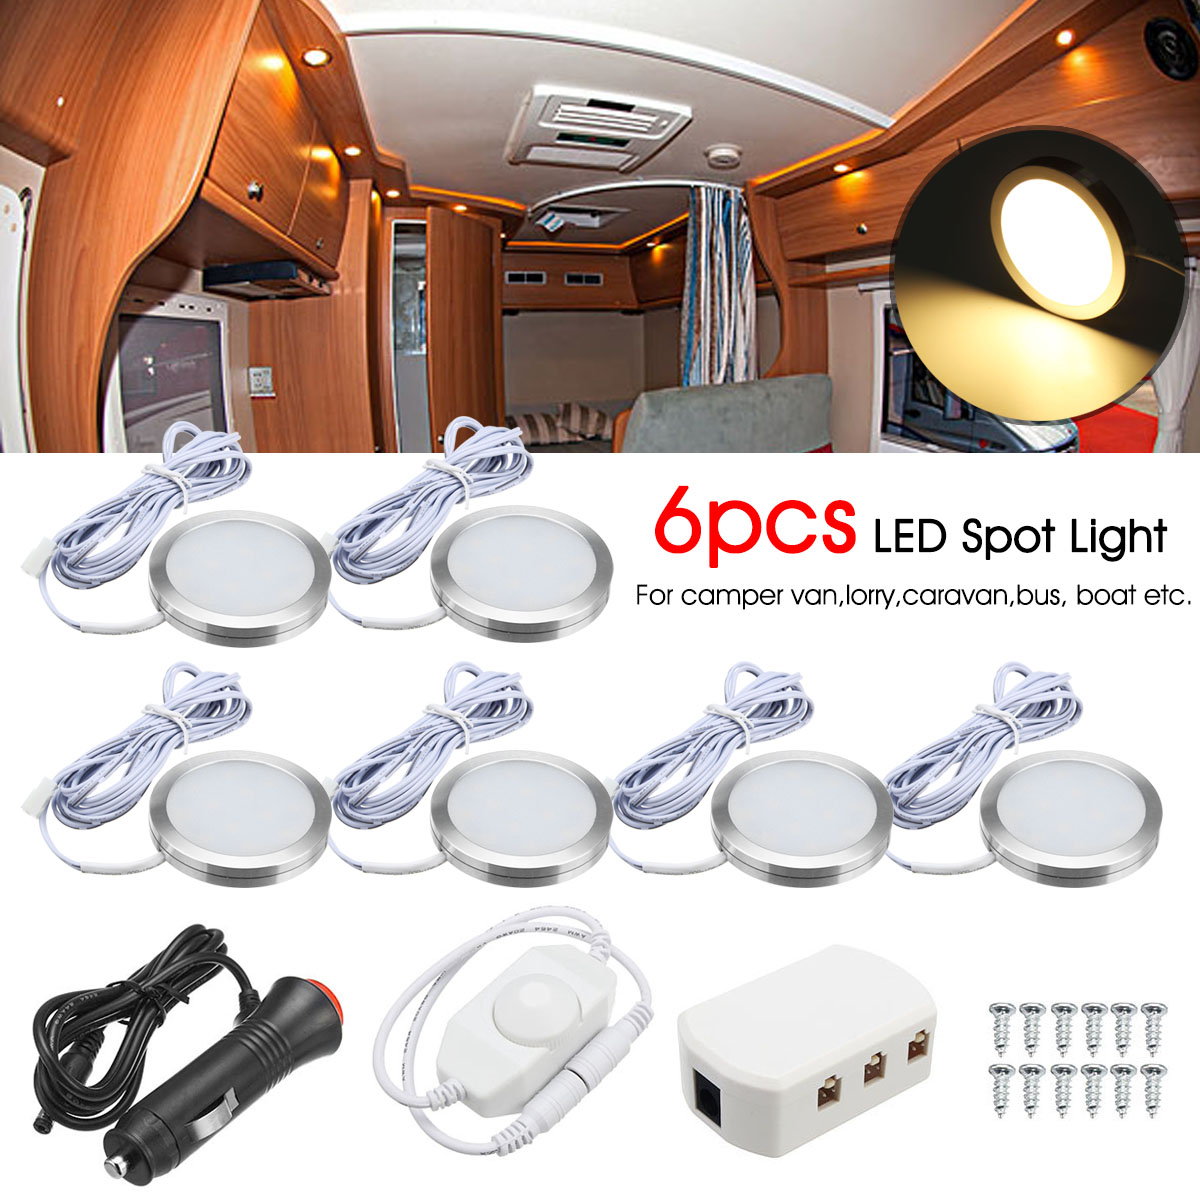 6pcs 12V Round <font><b>LED</b></font> <font><b>Spot</b></font> Light Auto Ceiling Dome Lamps Dimmable <font><b>Wall</b></font> Lamp For Car Auto RV Home Hotel image